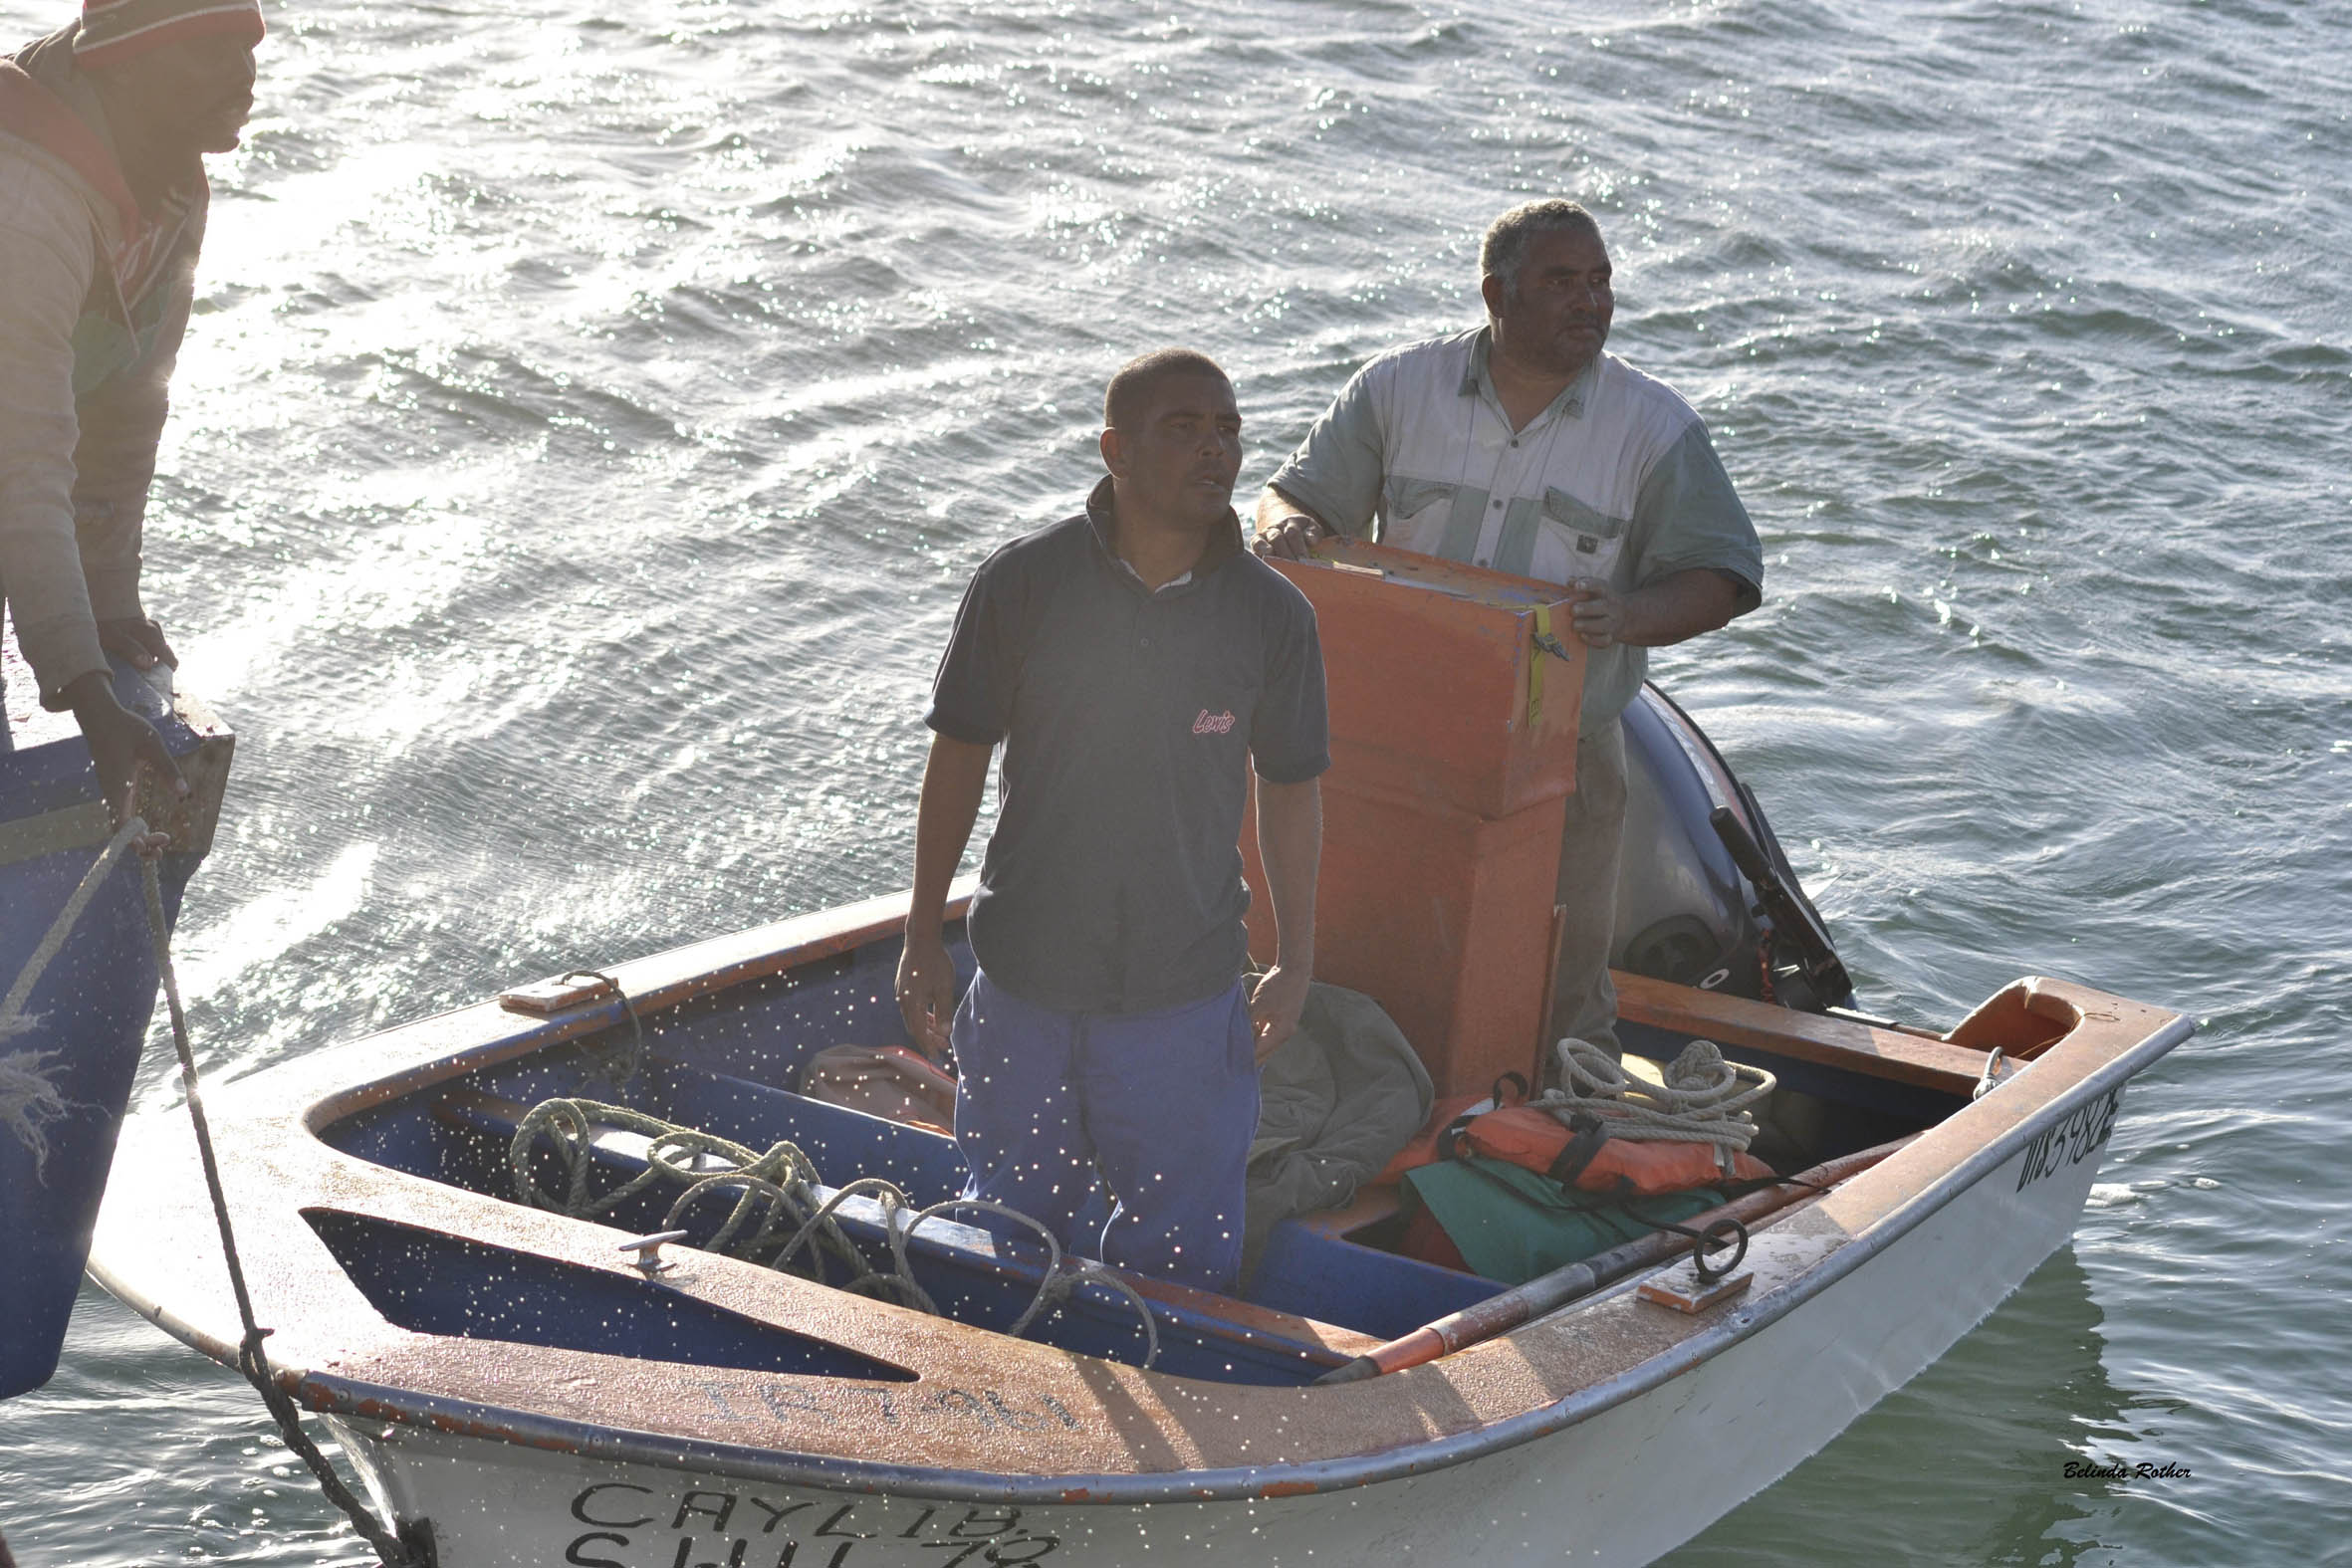 Christy Jordaan, 59, and his son Brandon 36, after being towed in to Saldanha by the fishing boat Adamas. Picture Belinda Rother/NSRI.